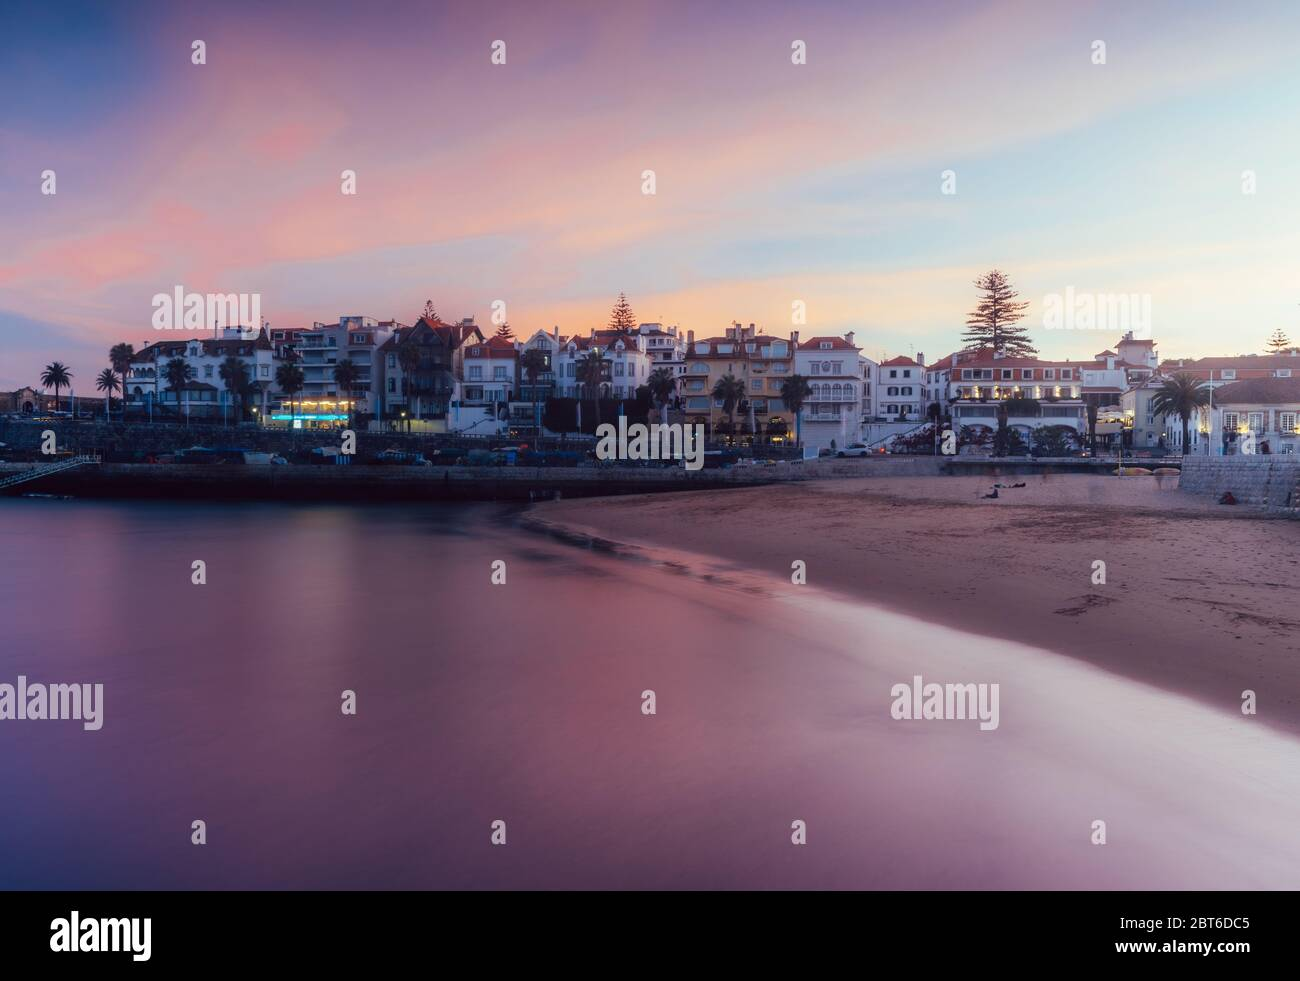 magenta-sunset-overlooking-the-bay-and-historic-centre-of-cascais-portugal-2BT6DC5.jpg